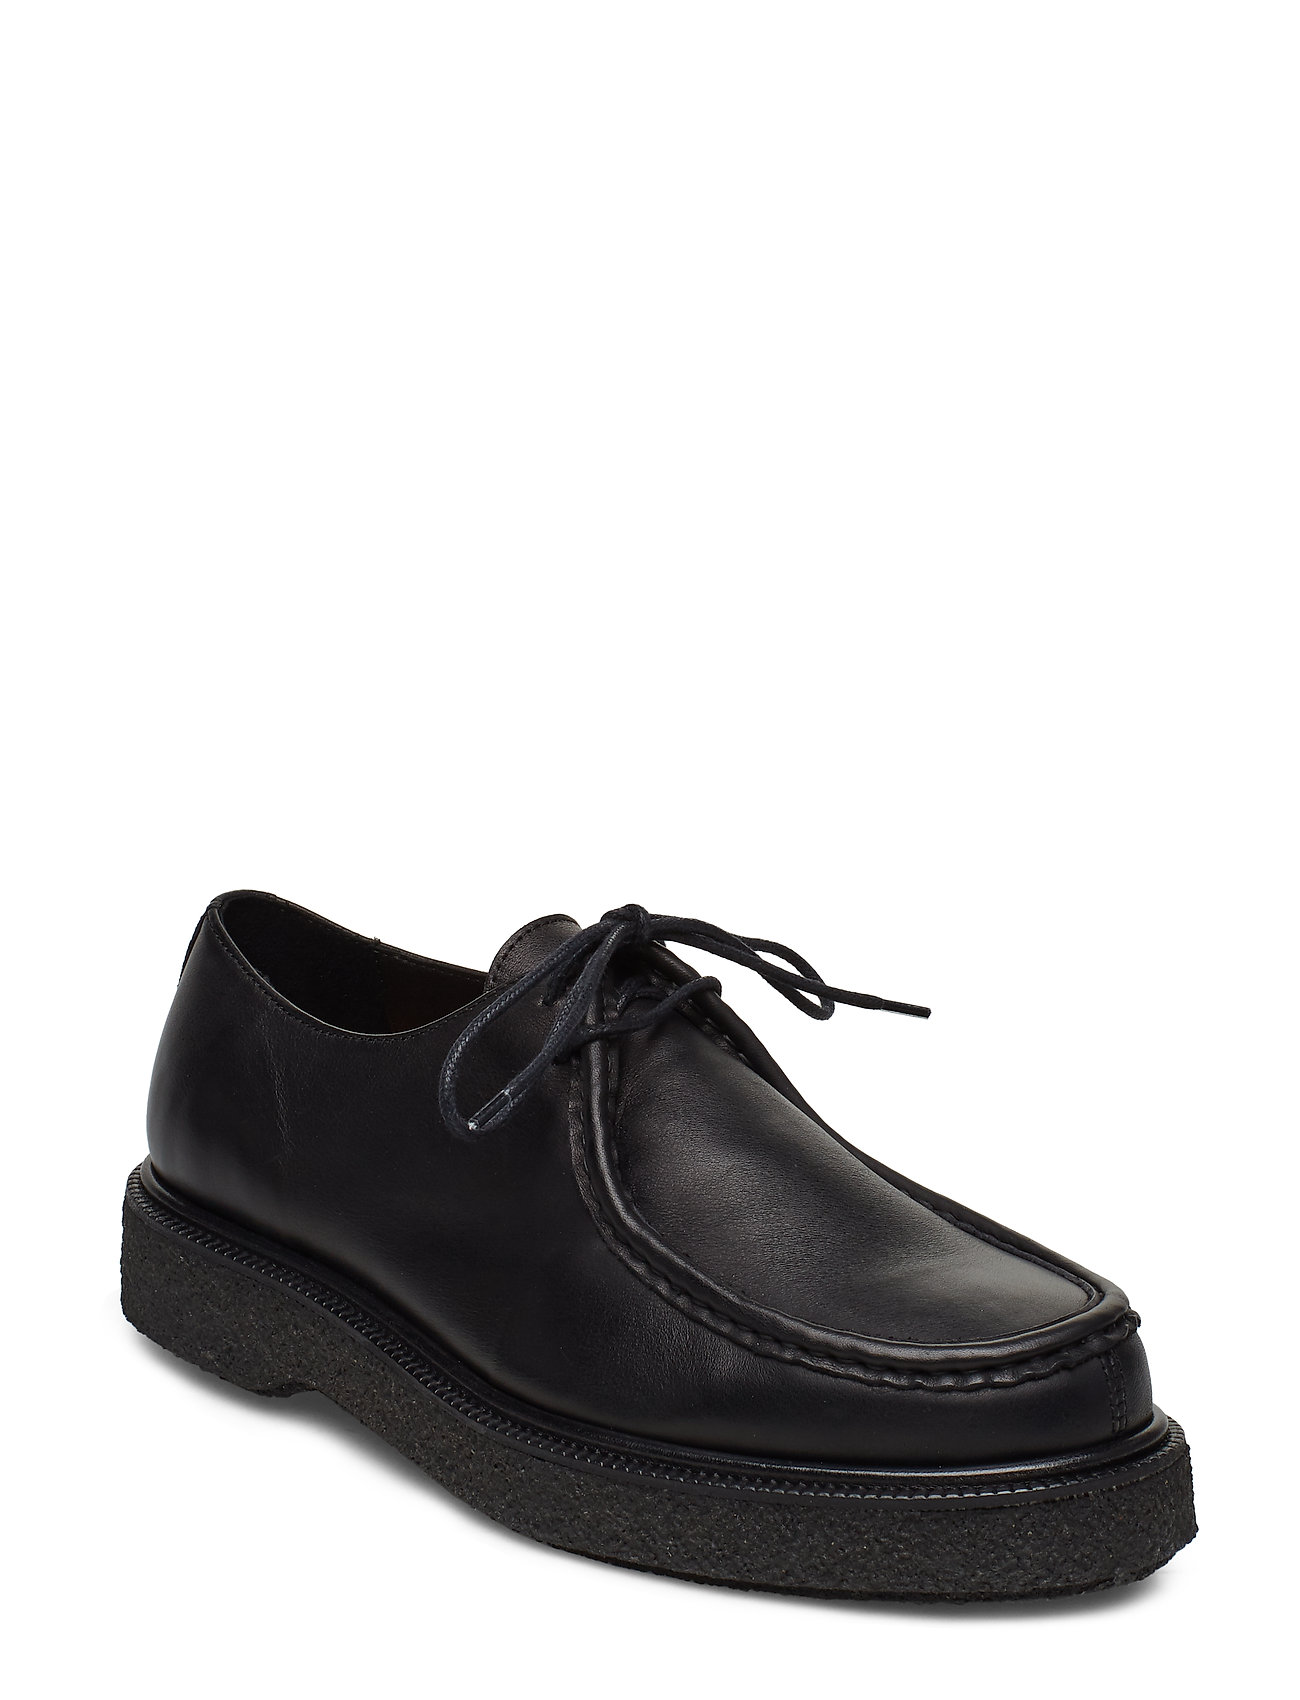 SELECTED Slhstephan Leather Moc-Toe Shoe B Shoes Business Laced Shoes Schwarz SELECTED HOMME